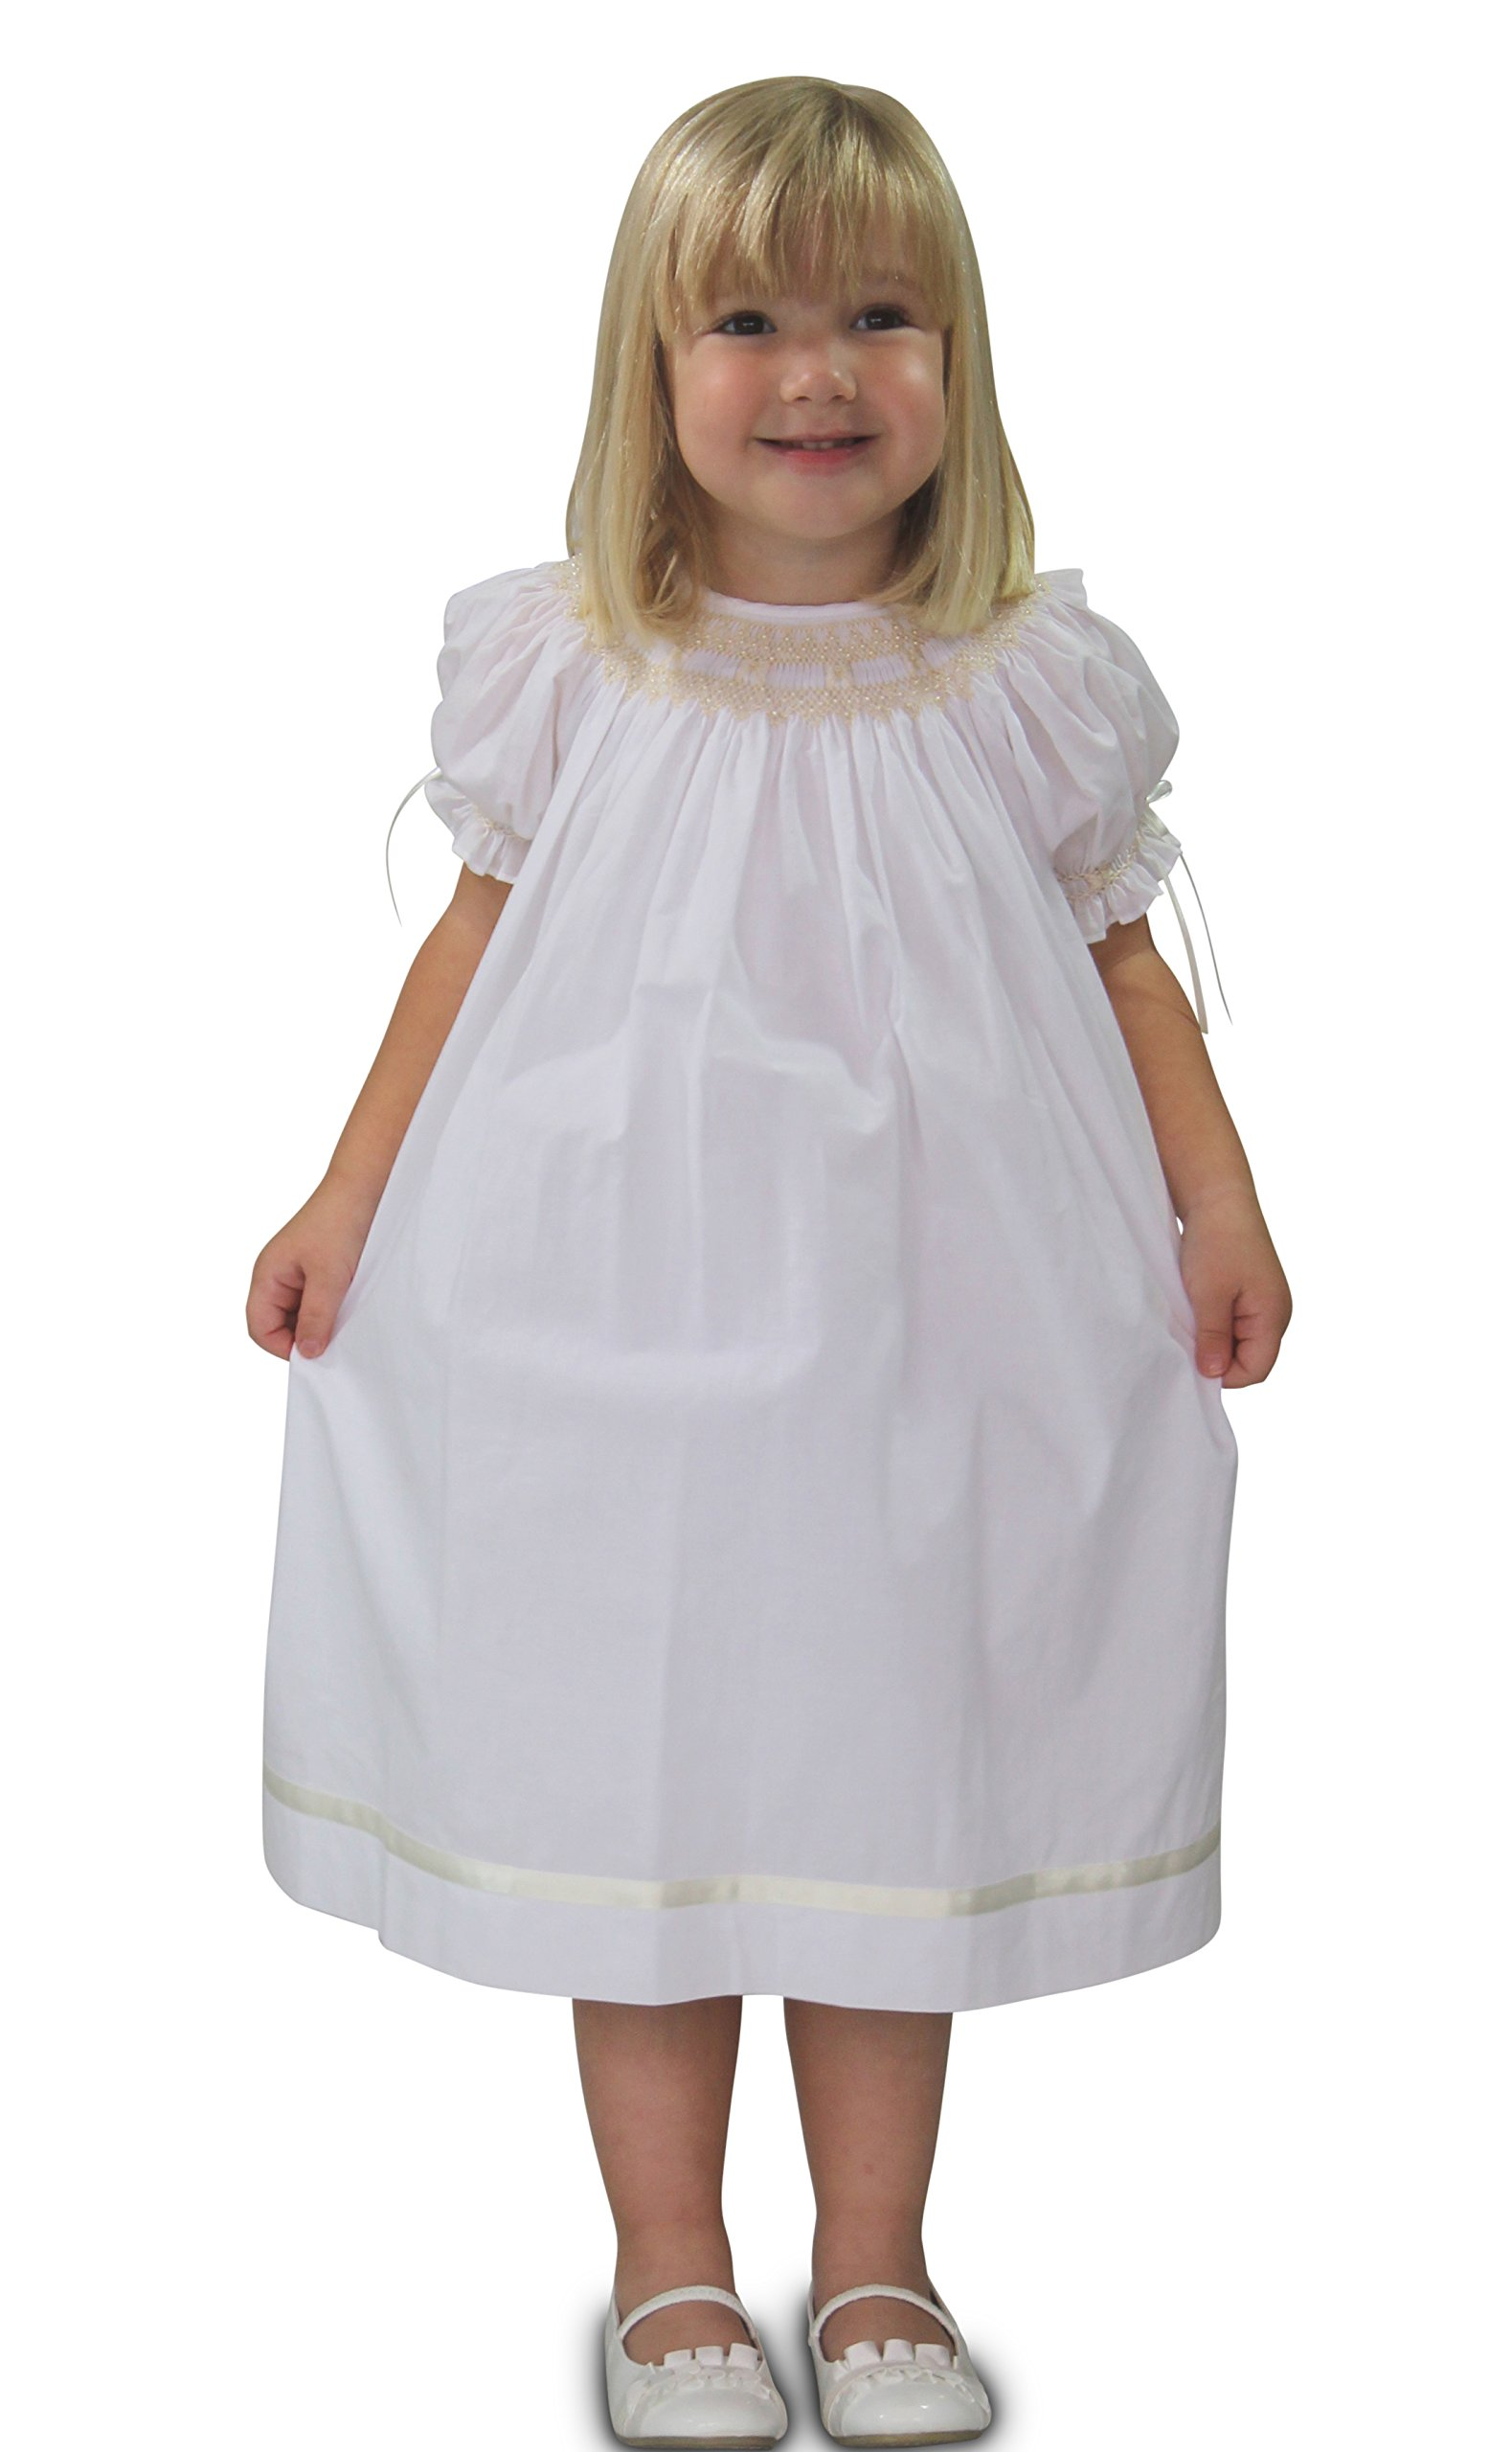 Strasburg Children Little Girls Toddler Pearl Smocked Dress Flower Girl White (3)